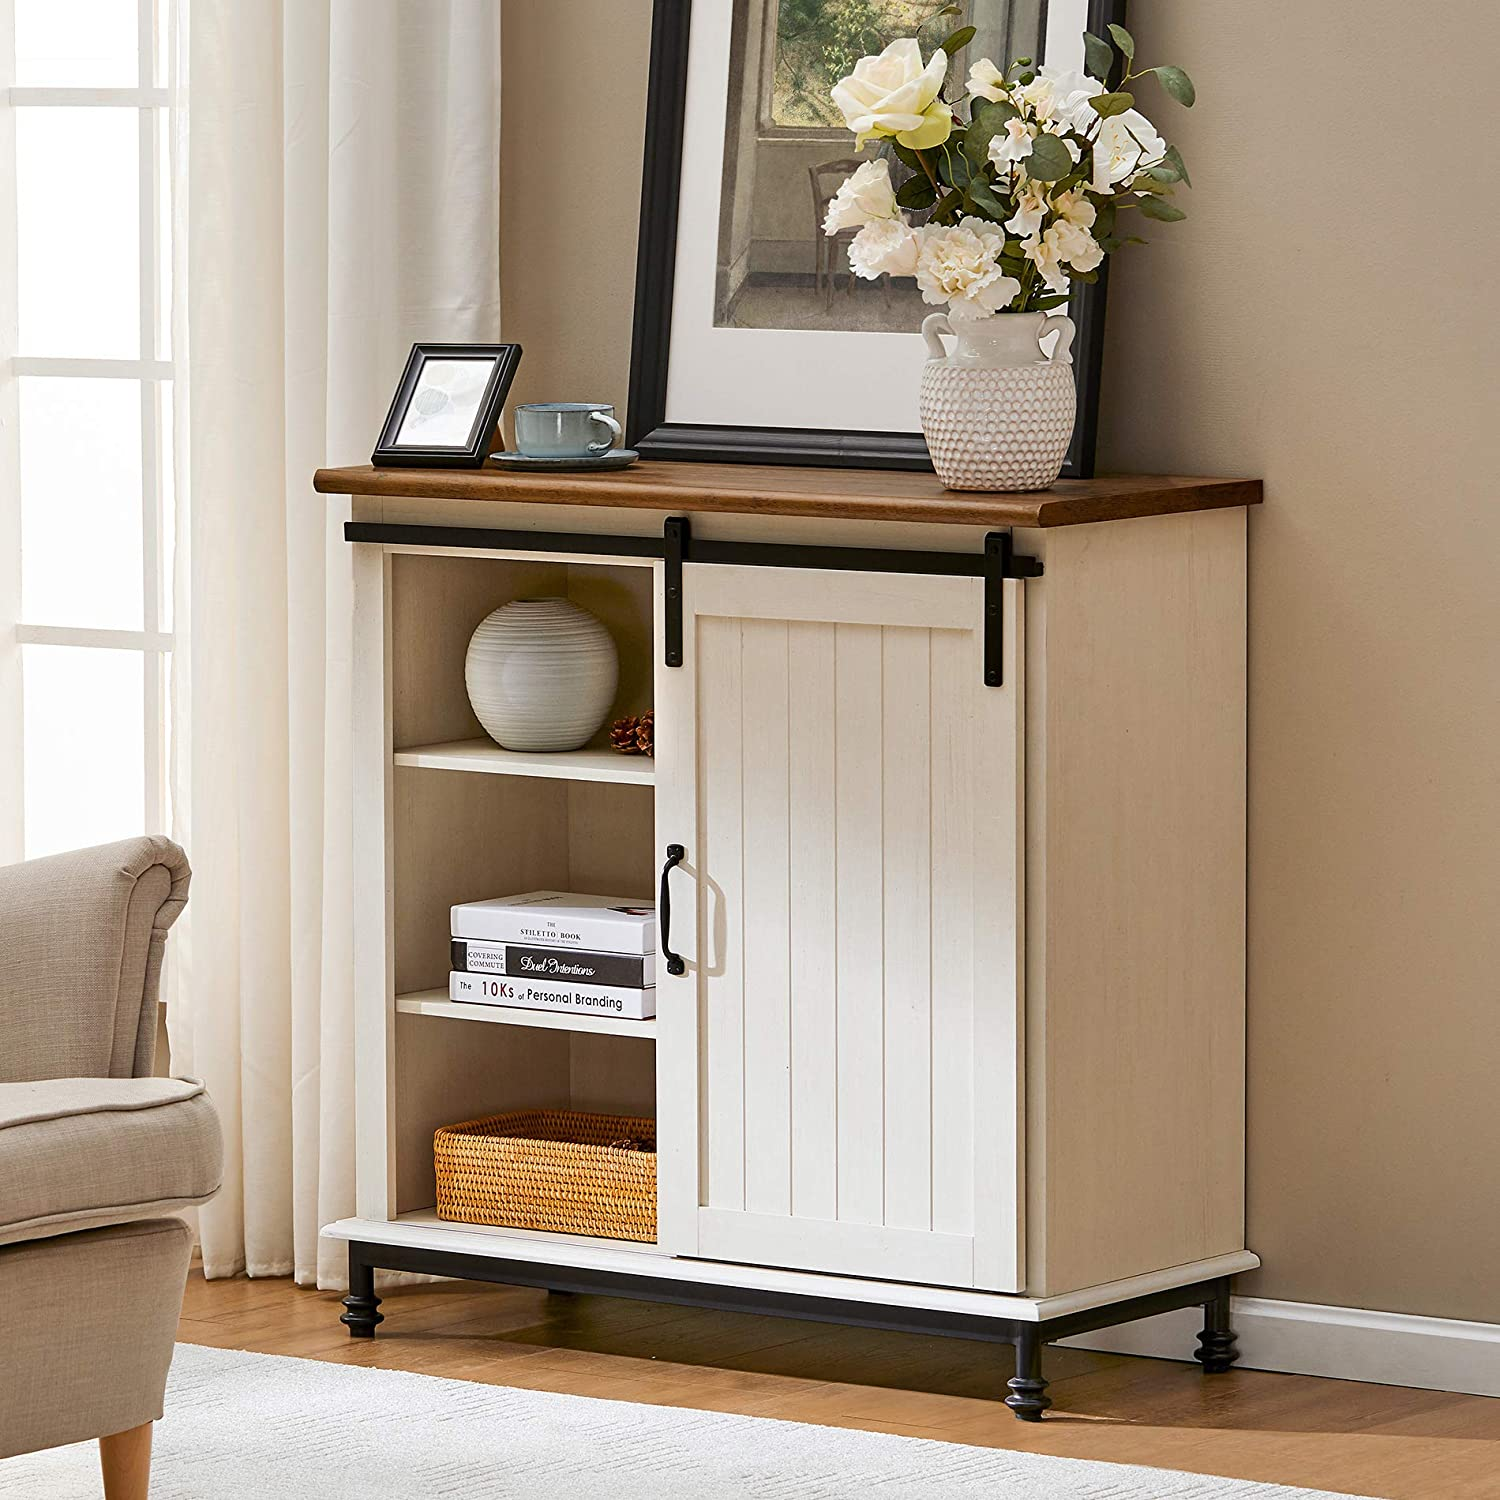 WAMPAT Farmhouse Sliding Barn Door Accent Cabinet Buffet Entryway Bar Storage Table for Living Room, Bathroom and Home Kitchen, 30 Inch, White